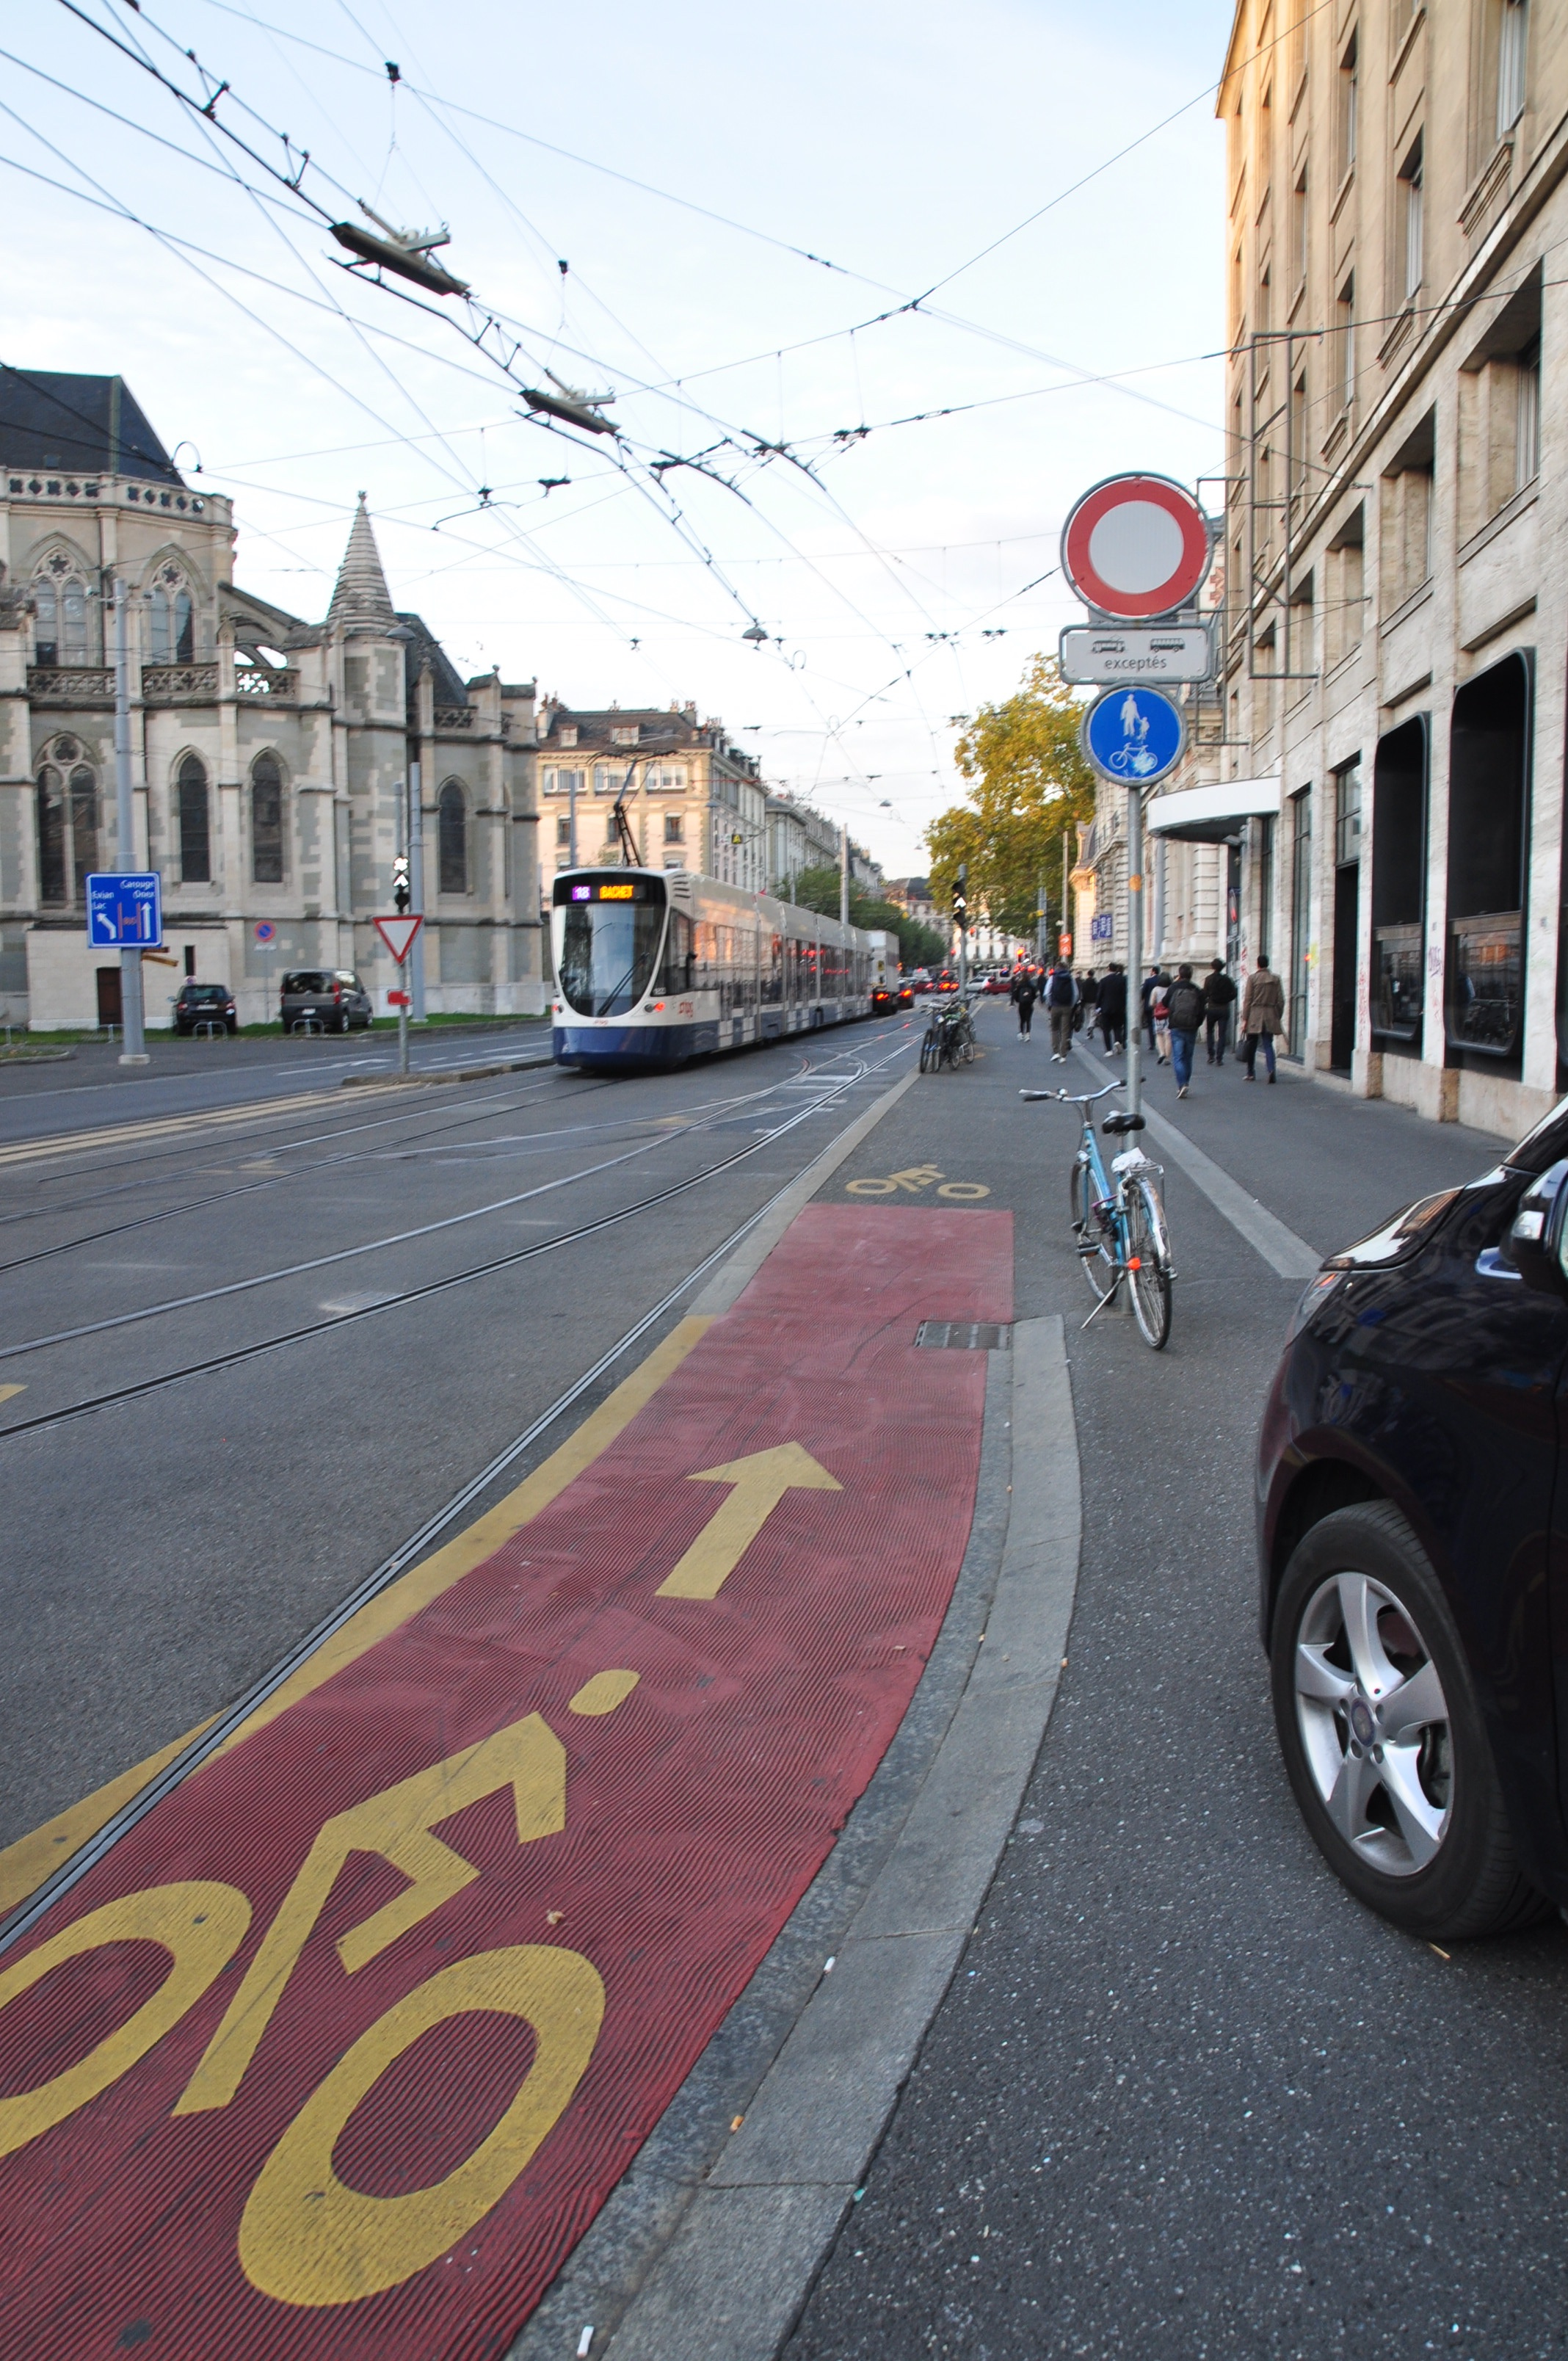 A bicycle lane merging with the sidewalk in Geneva. On the left side, the public transportation passes by, while on the right, pedestrians roam through the bicycle lane.